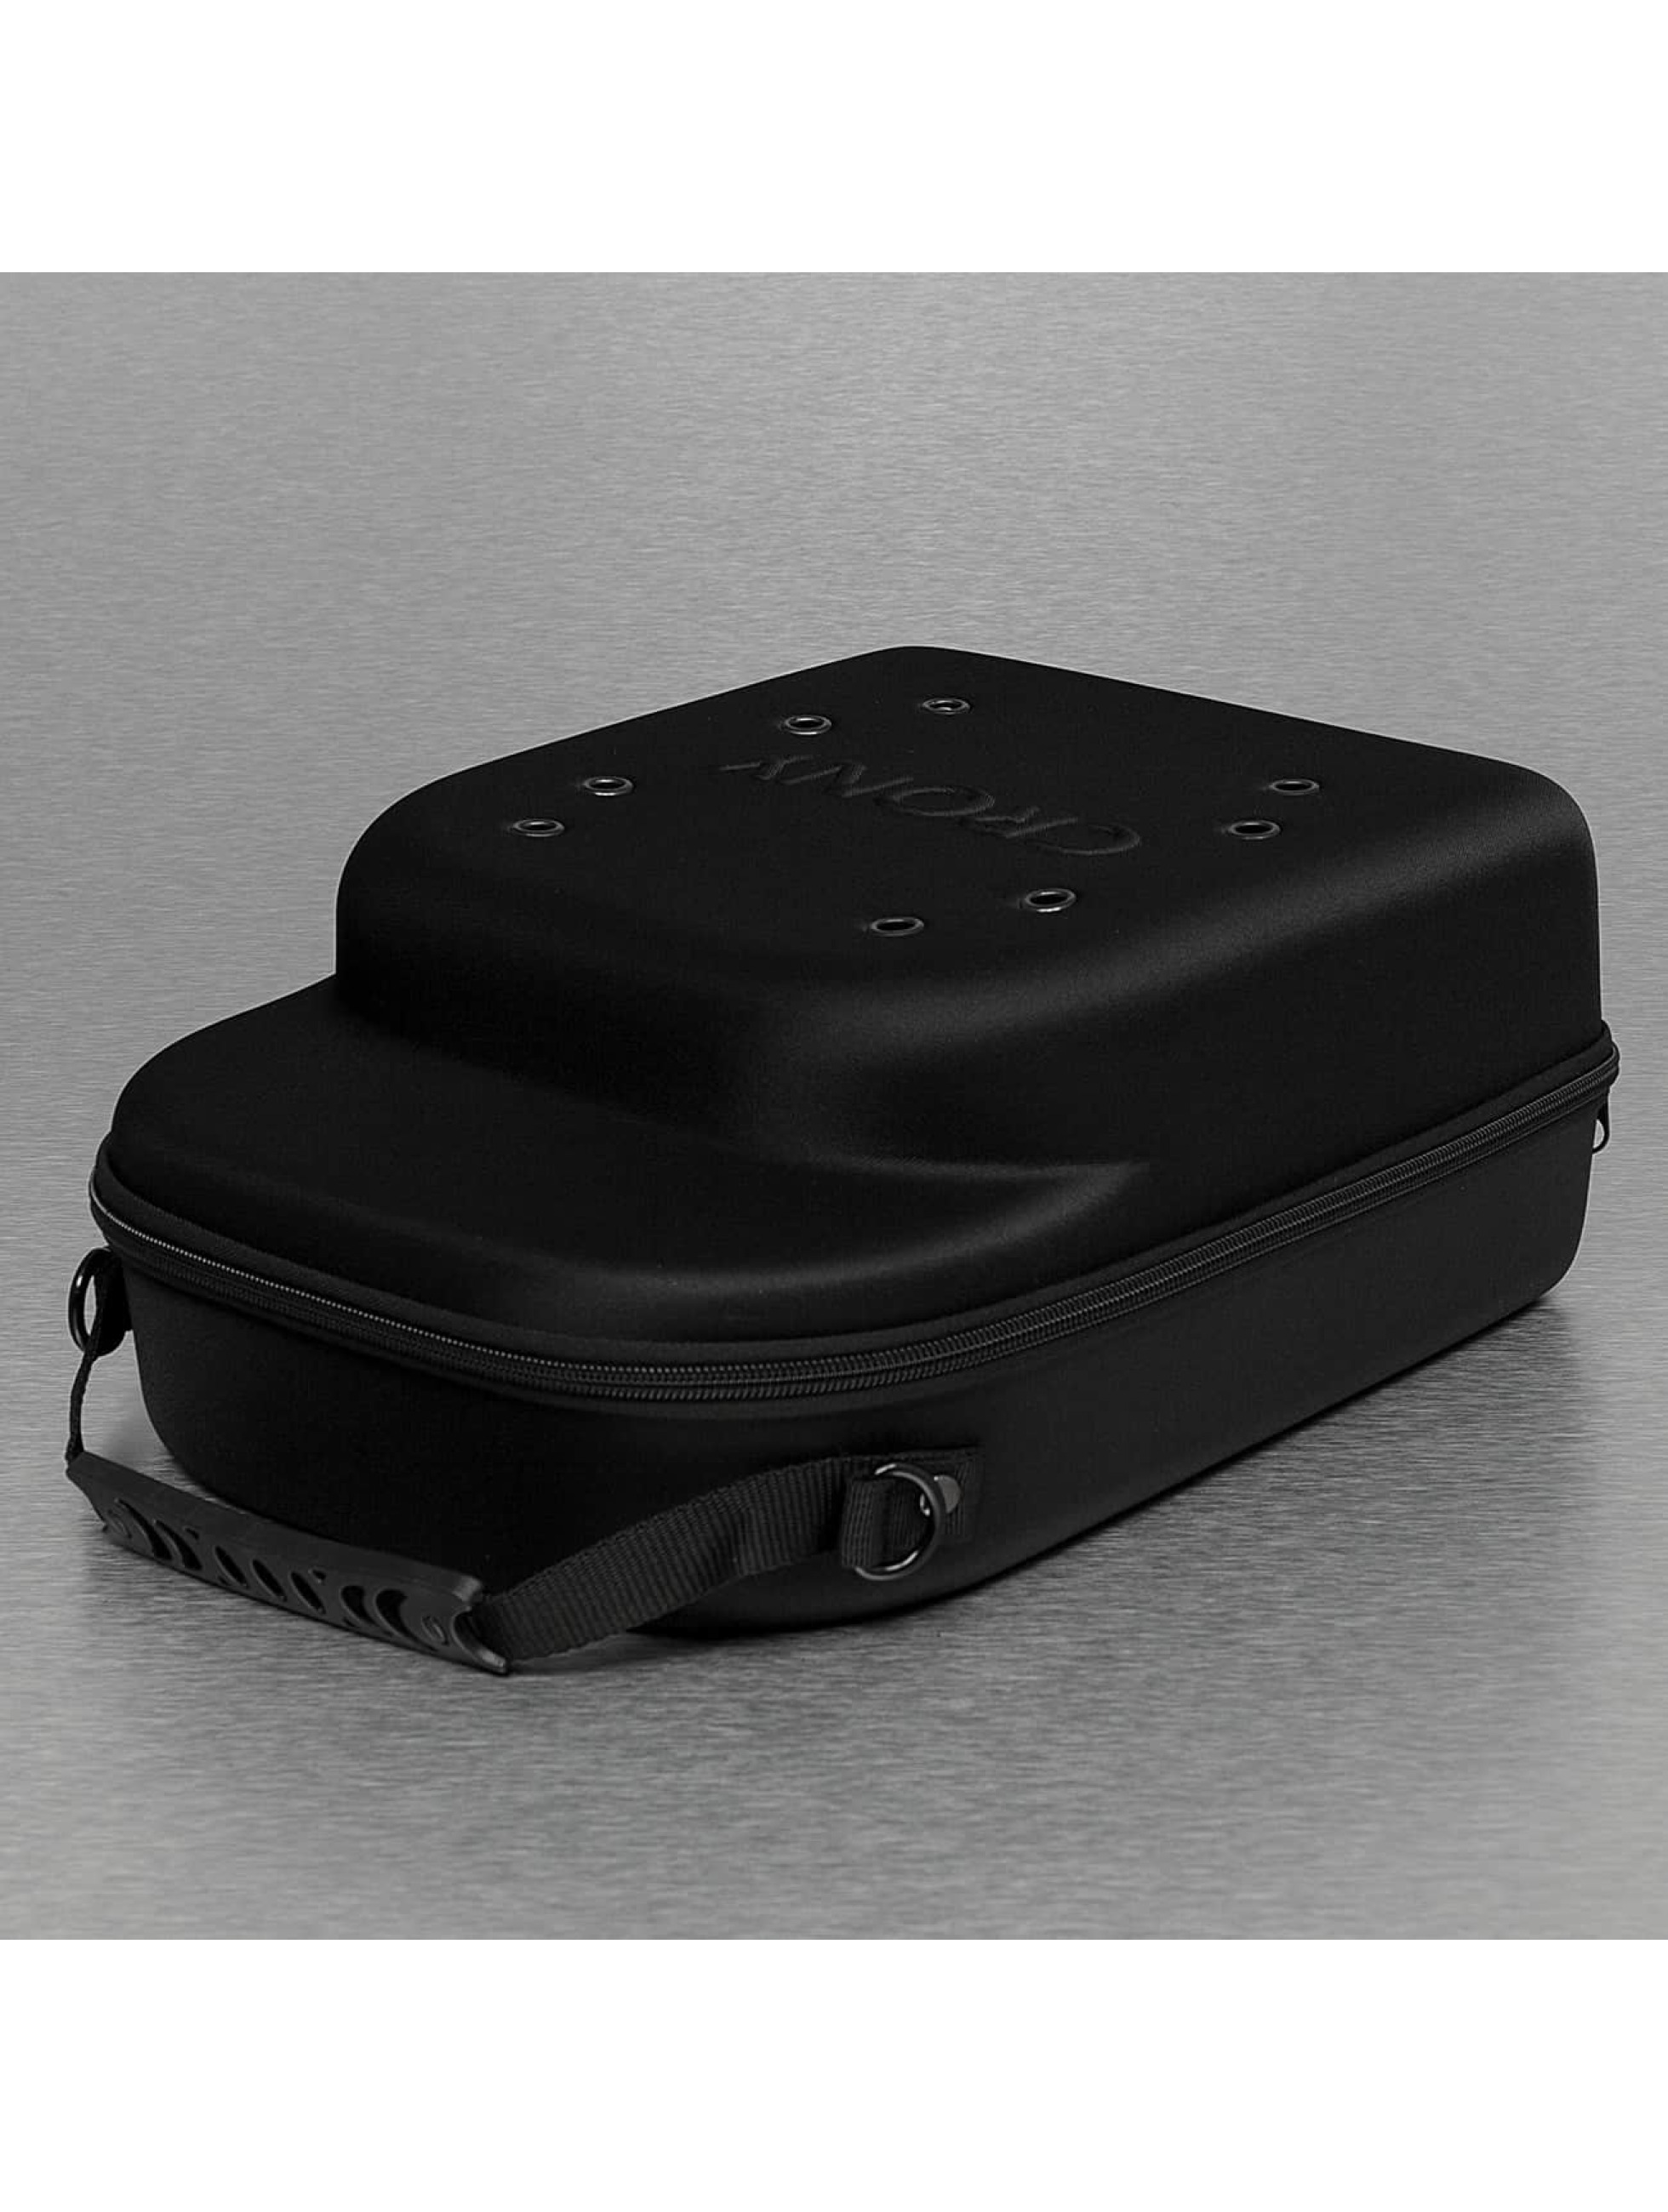 Cap Crony Overige 6K Carrier Travel Box zwart